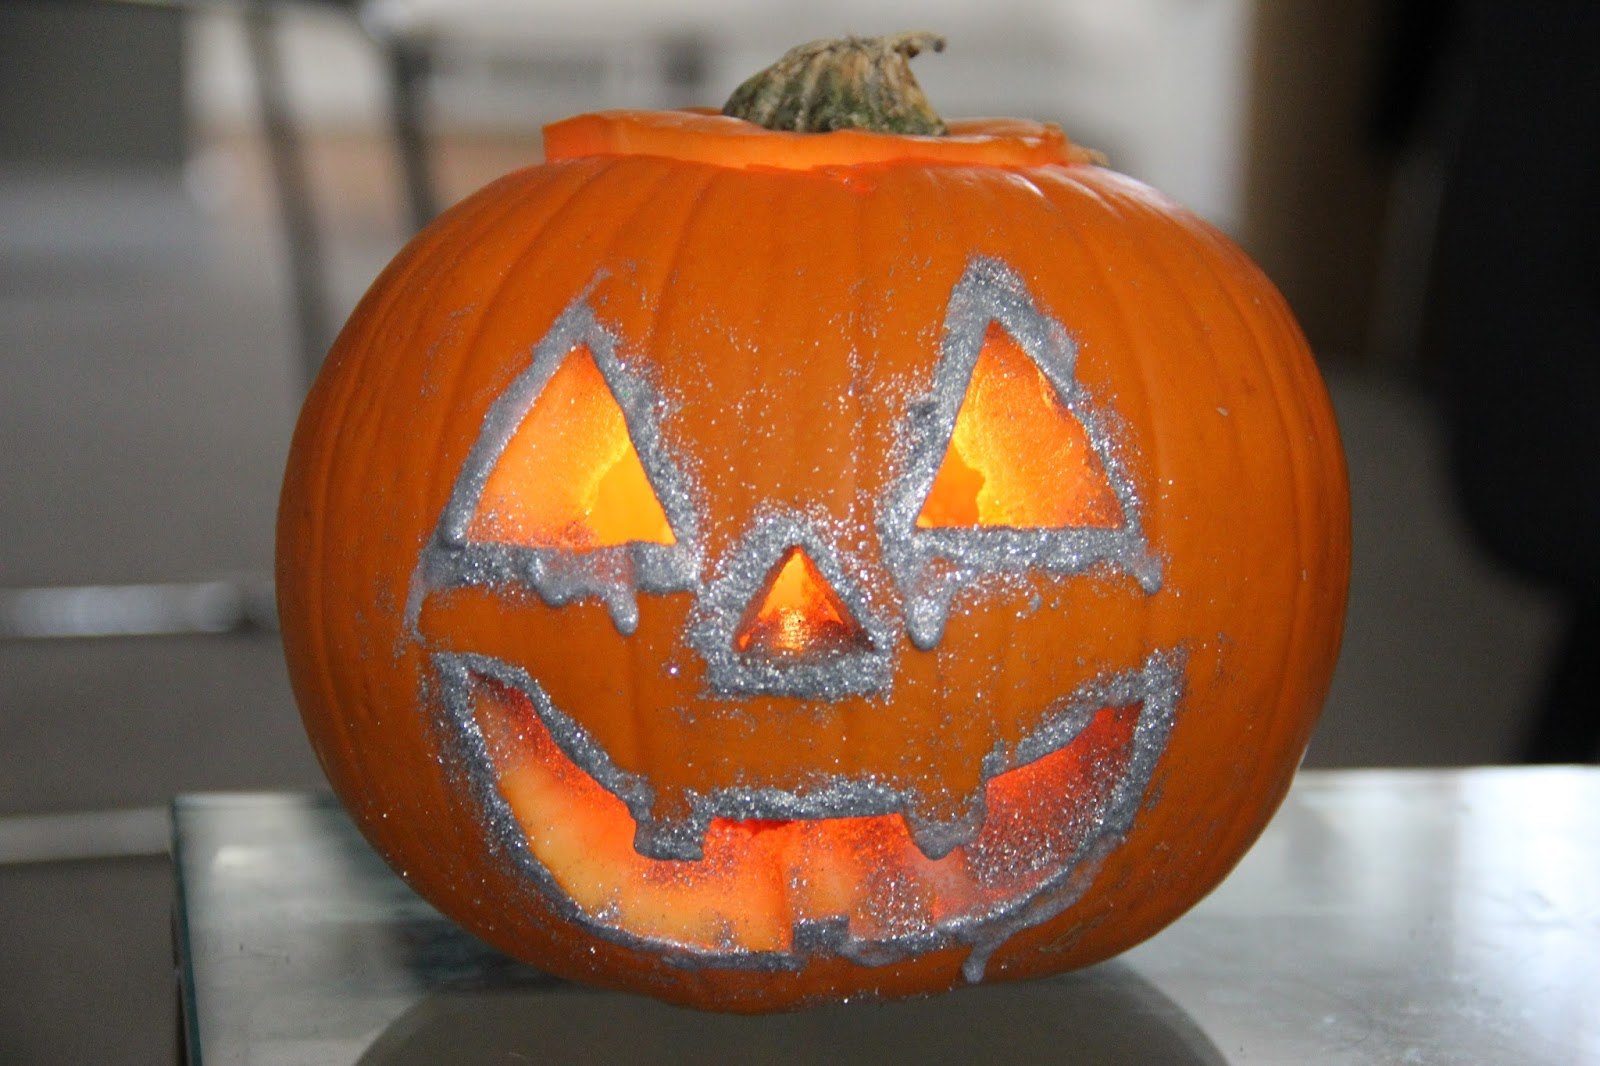 The decorated pumpkin.